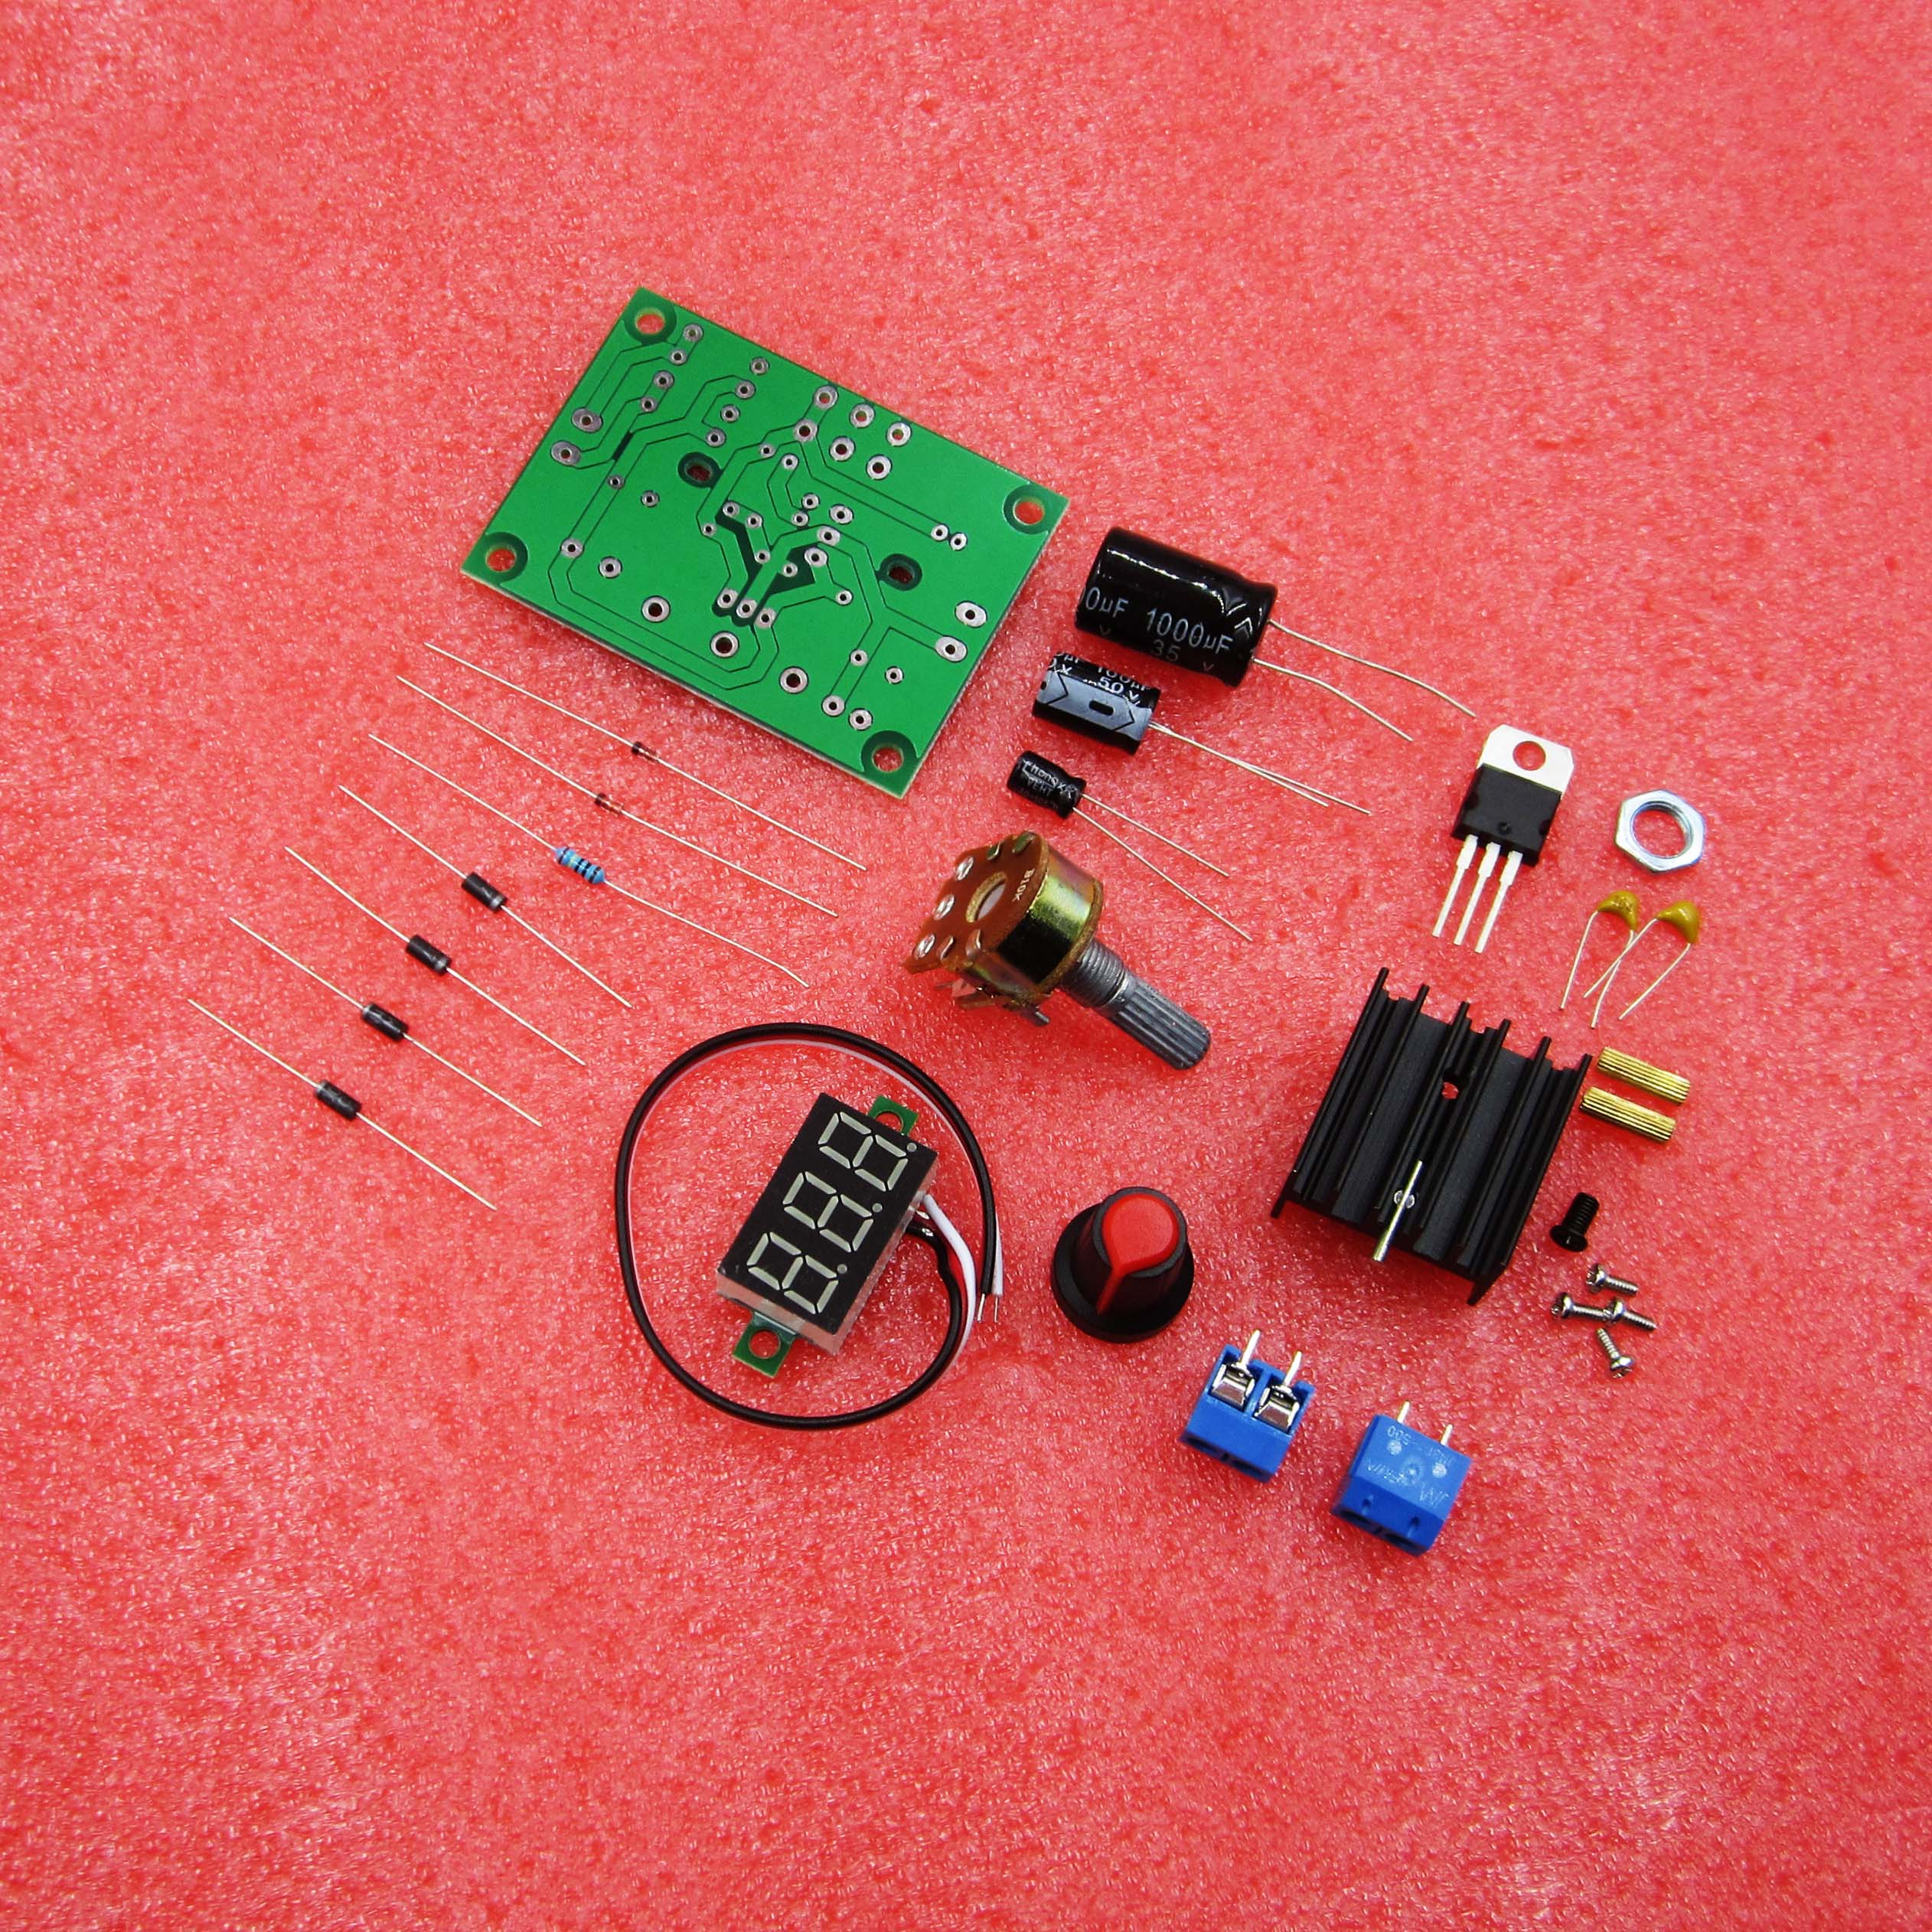 In Overheat Overcurrent Short Circuit Protection And Cooling Fan